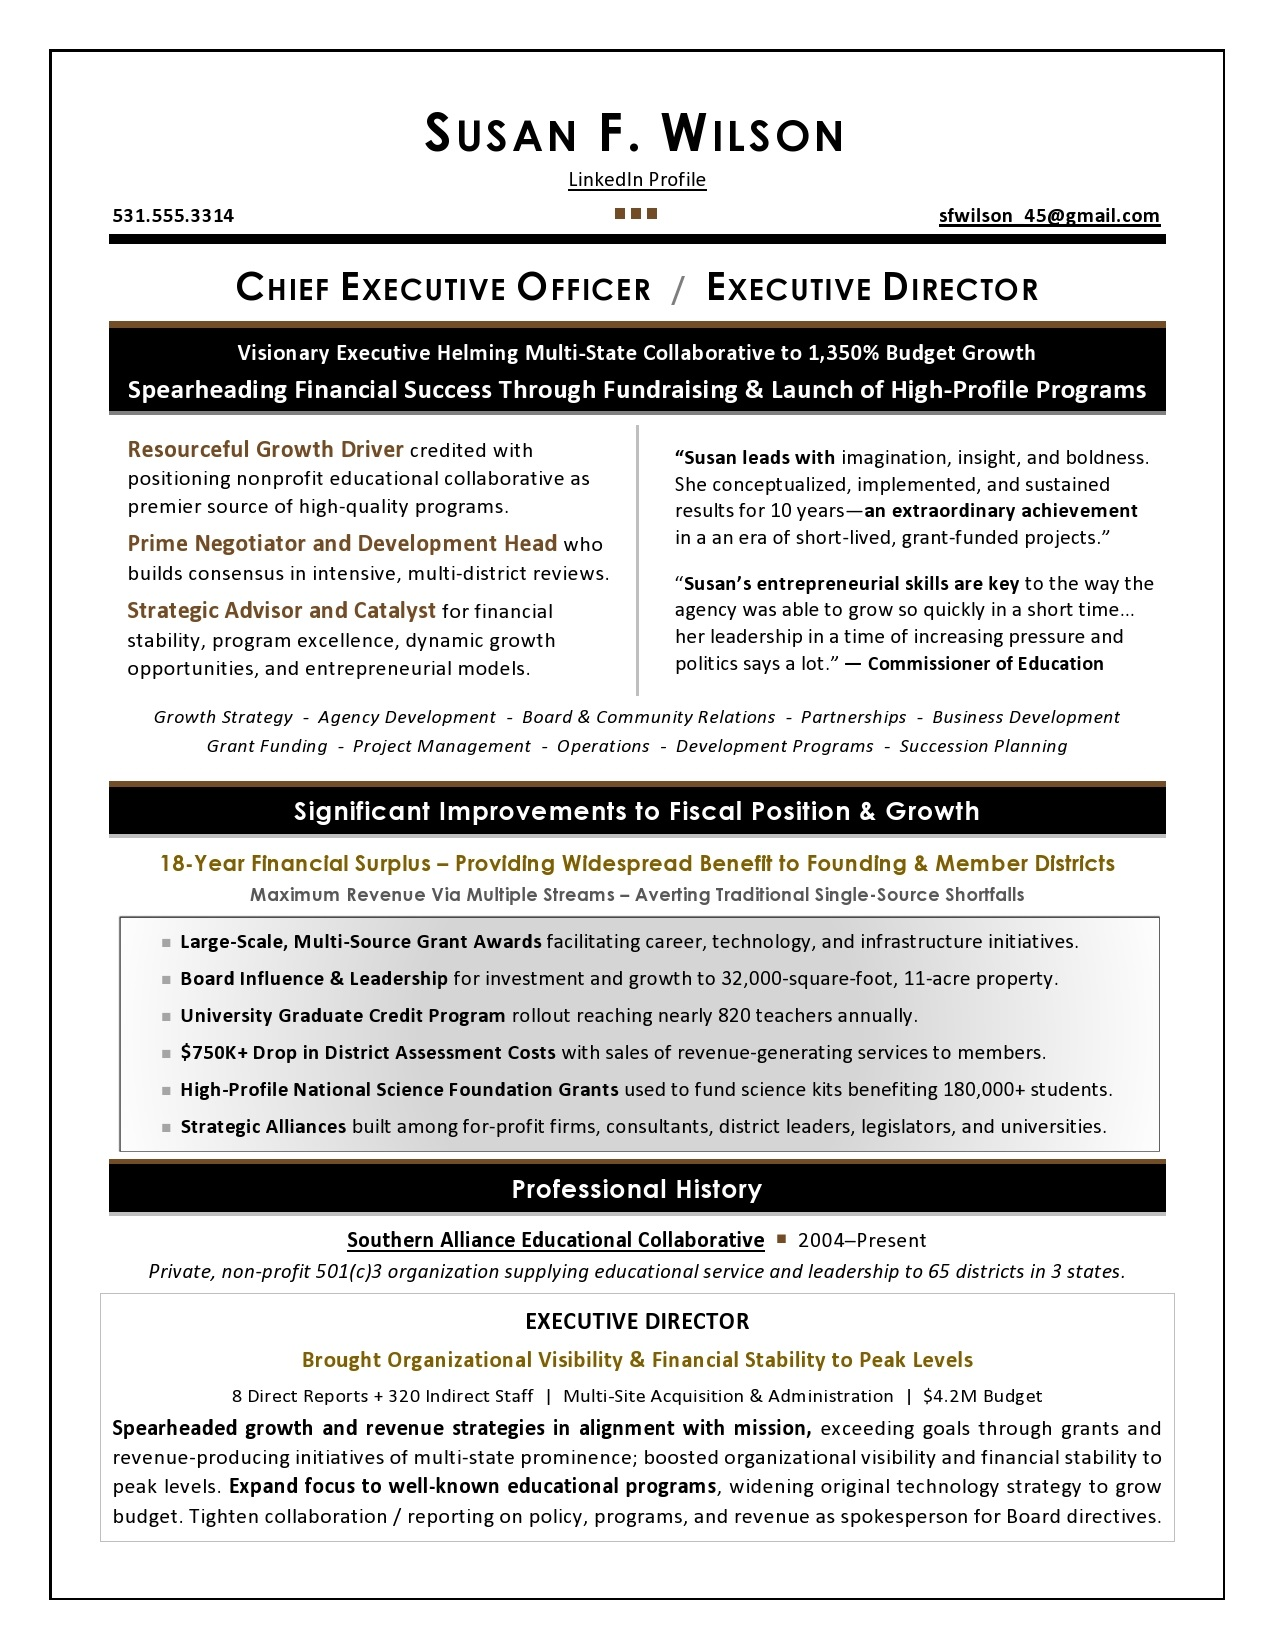 Ceo Executive Resume Samples Sample Cfo Resume Example Of Executive Resume Trends 2015